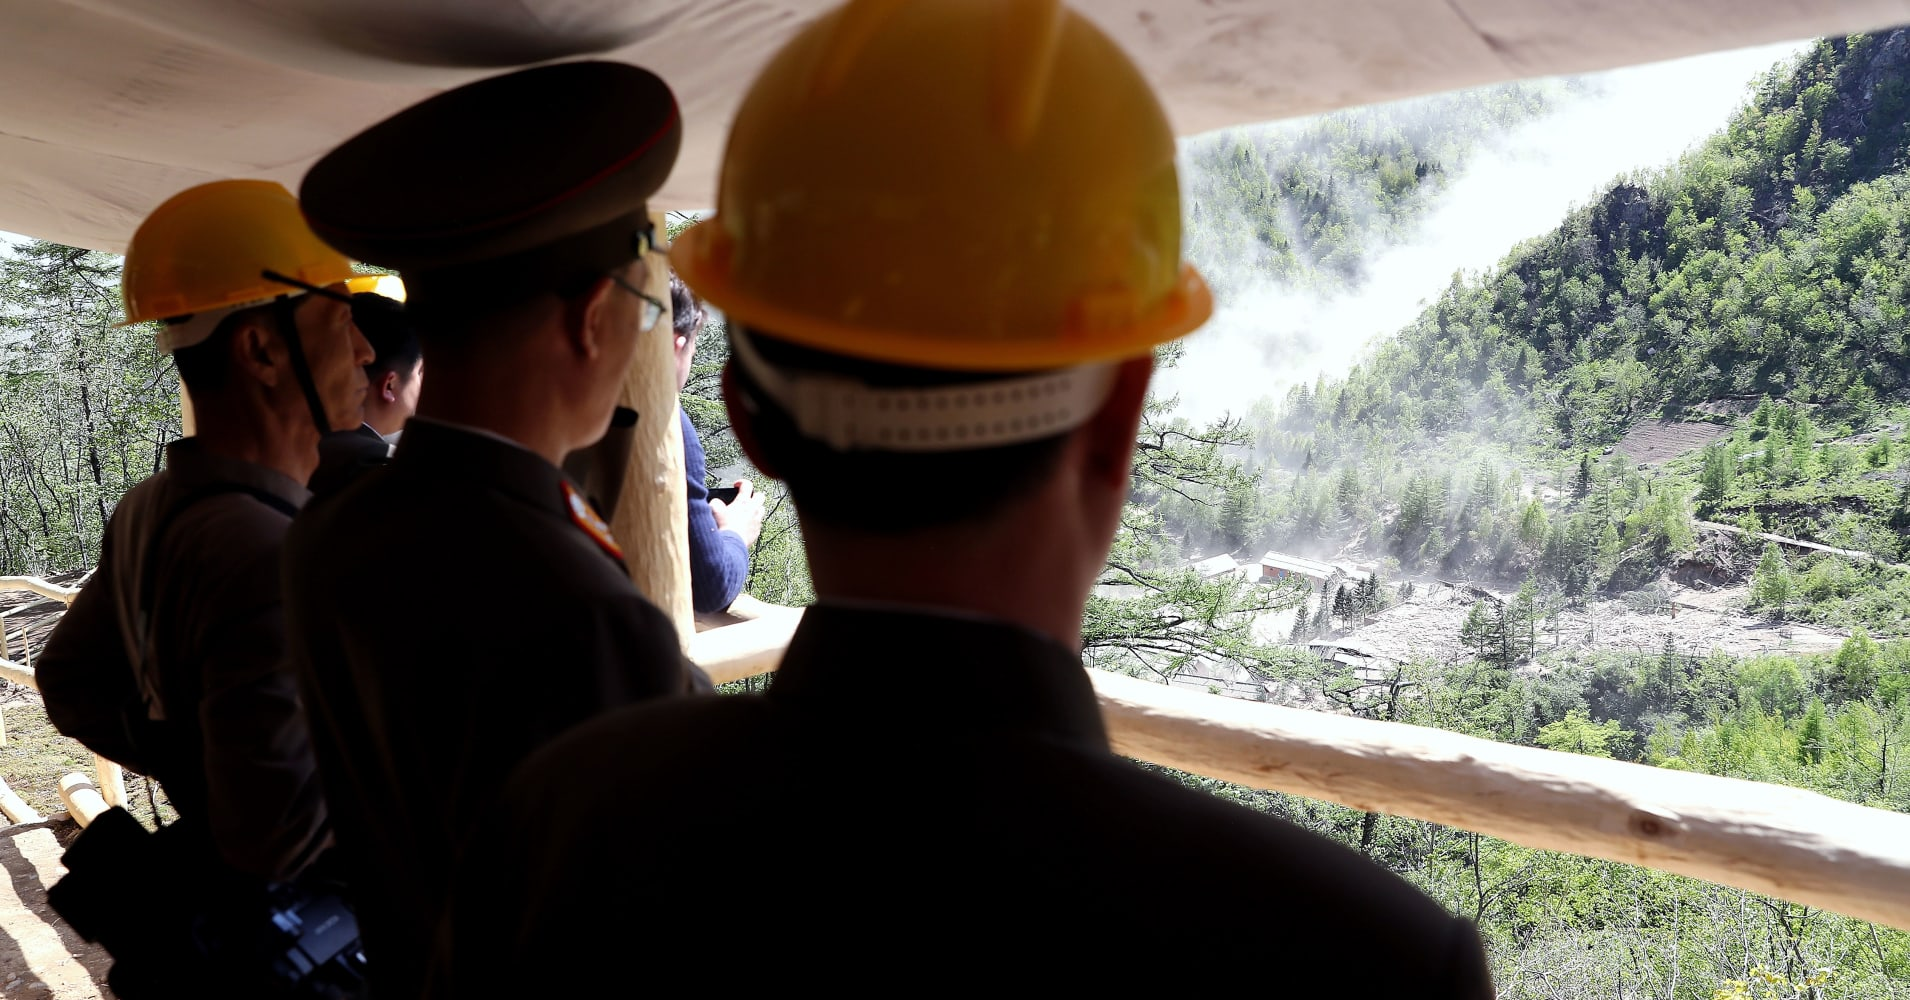 North Korea is reportedly preparing nuclear and missile sites for international inspectors